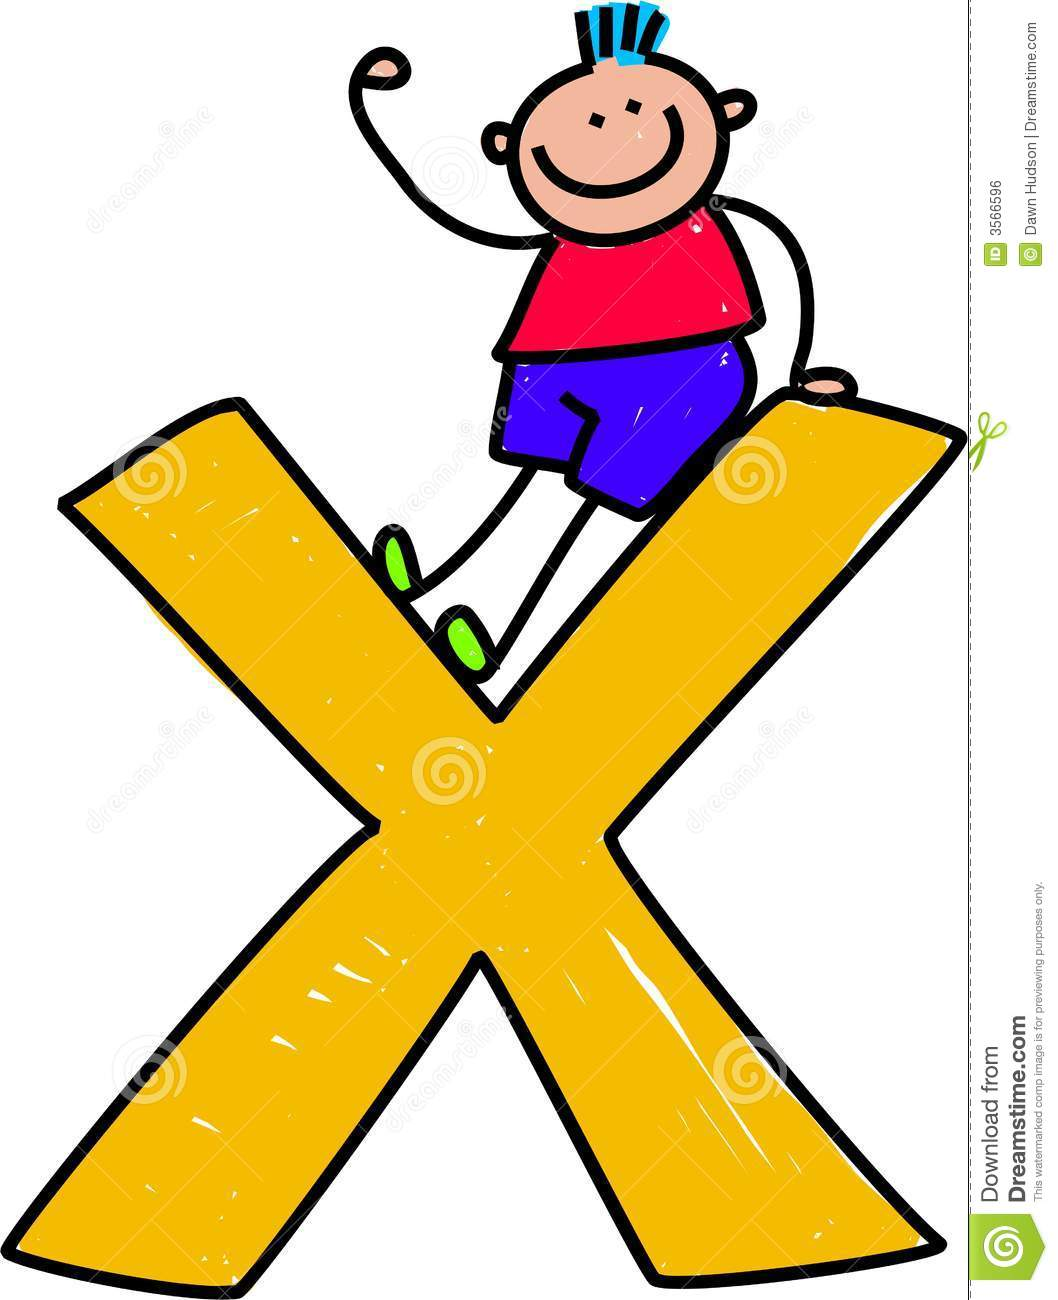 Letter X Boy Royalty Free Stock Image